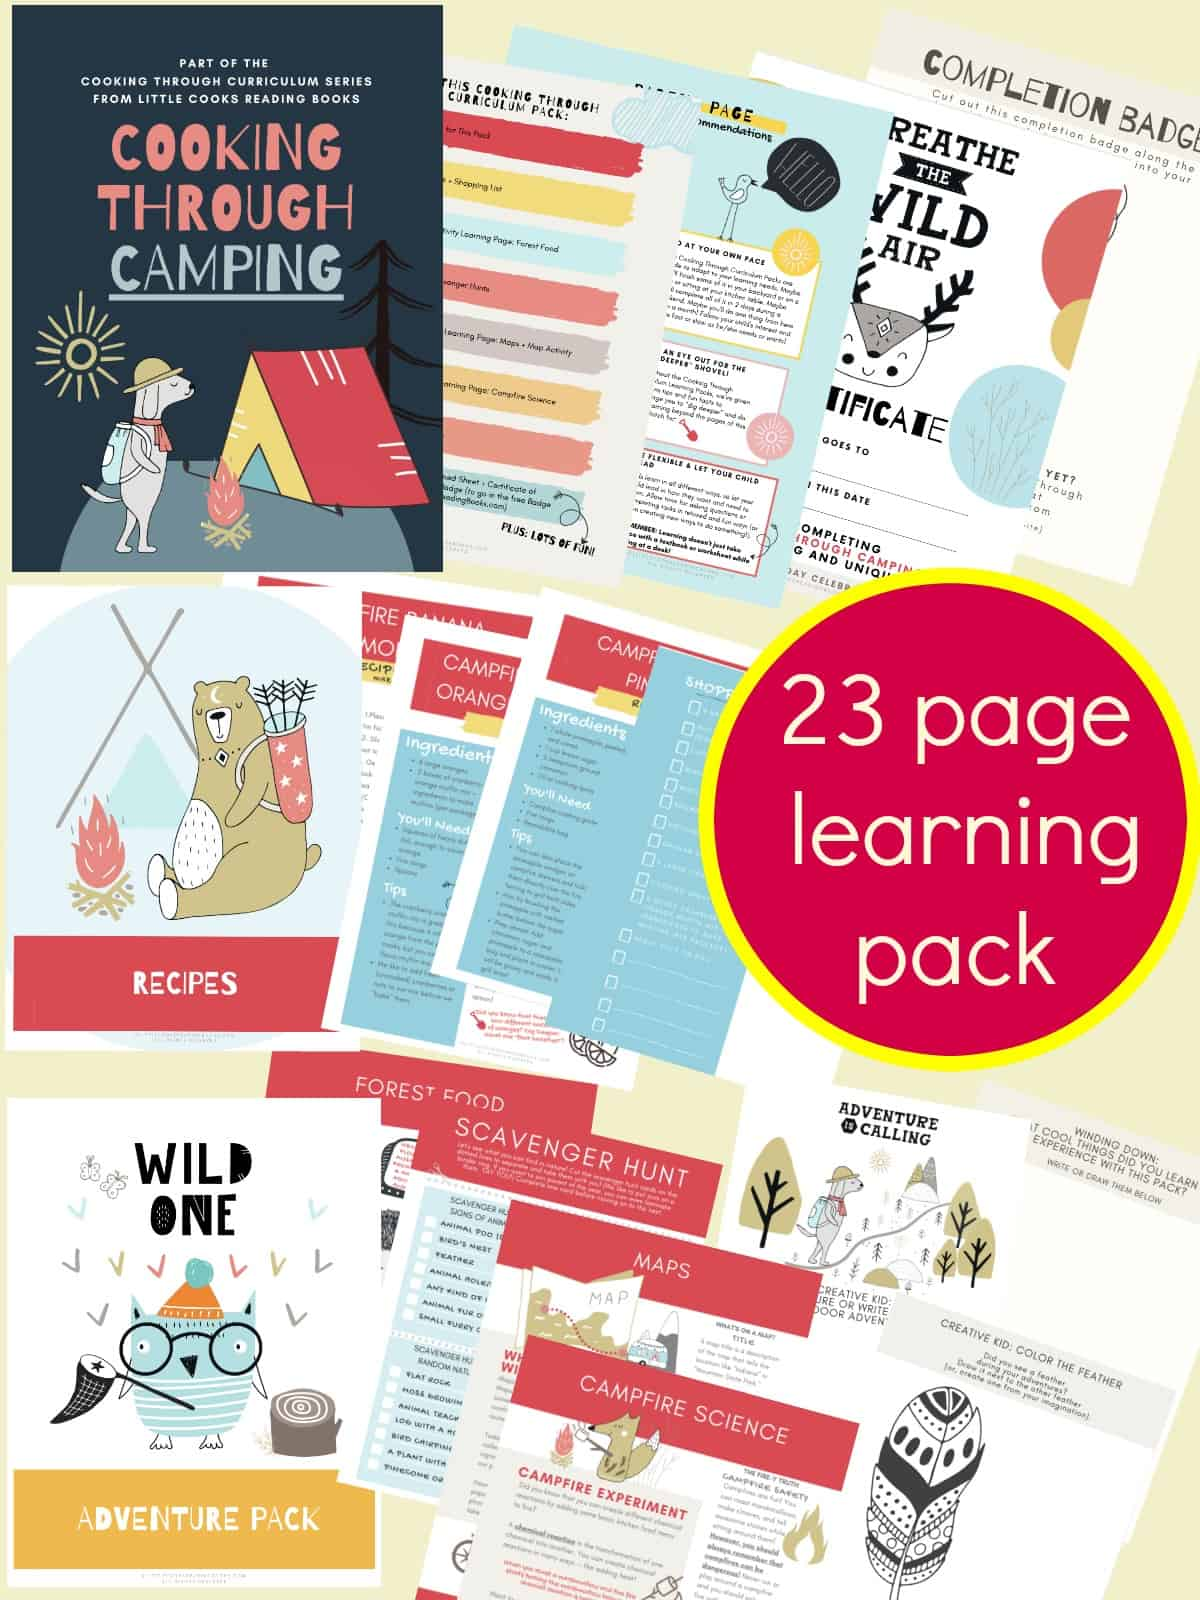 Cooking Through Camping Learning Pack Pages spread out